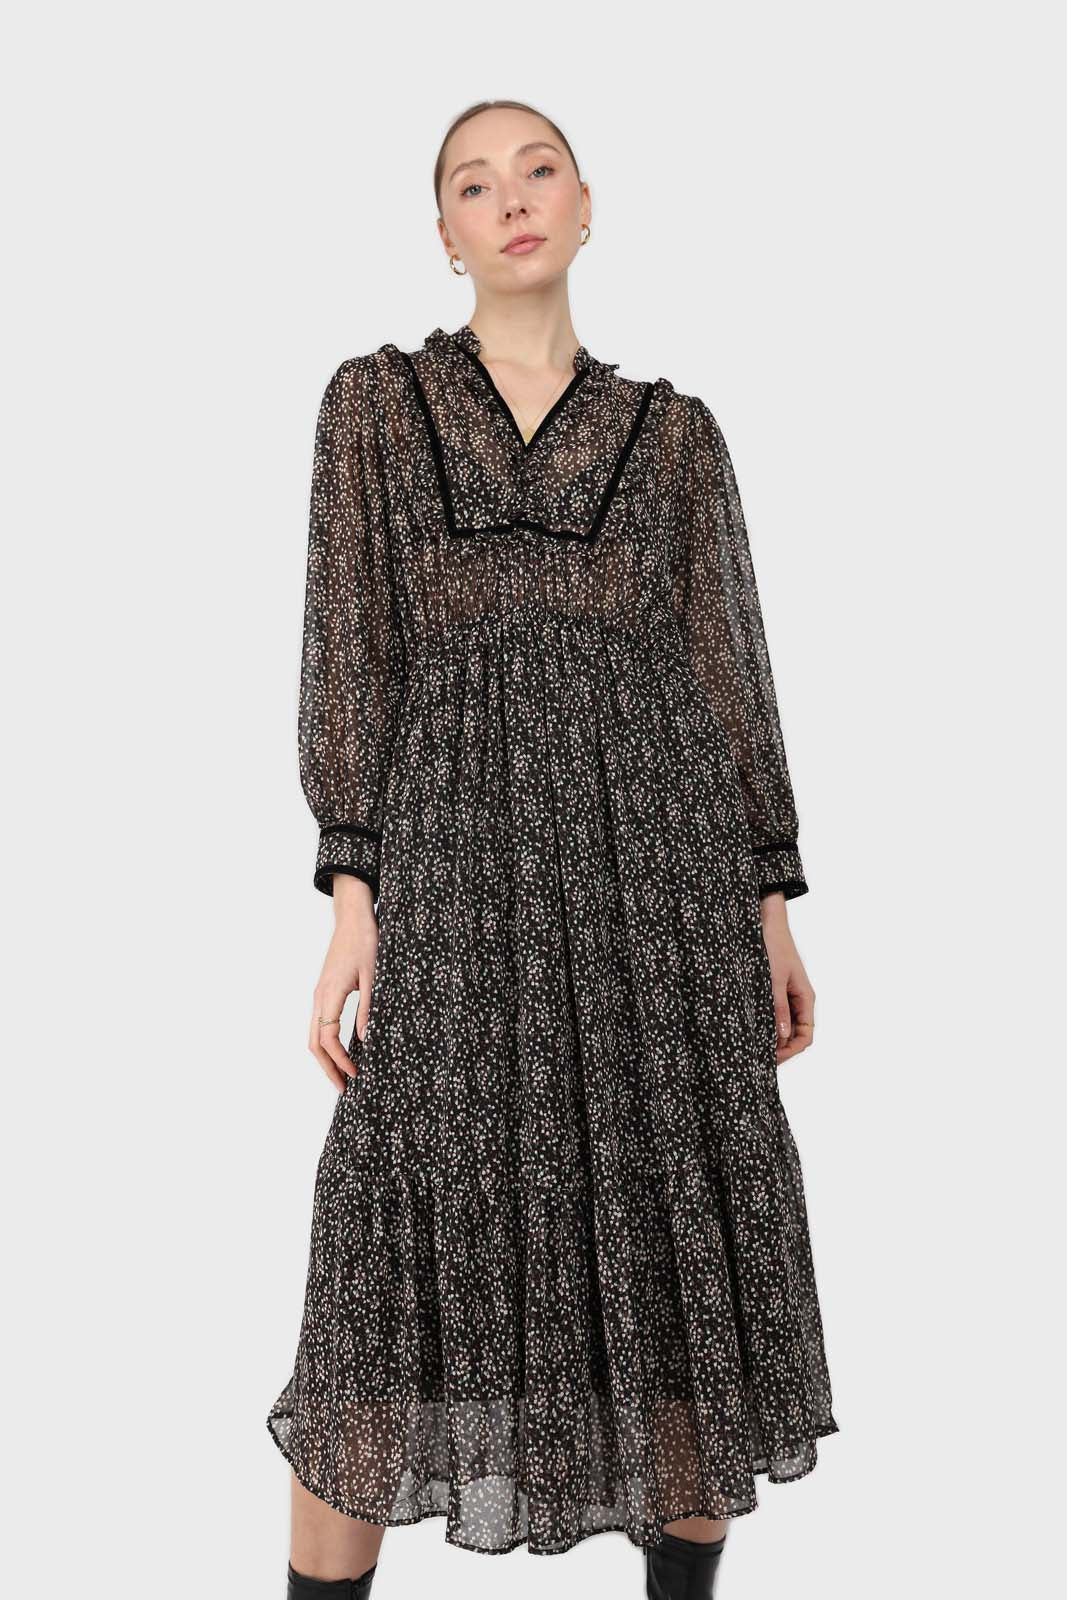 Black chiffon velvet trim floral maxi dress3